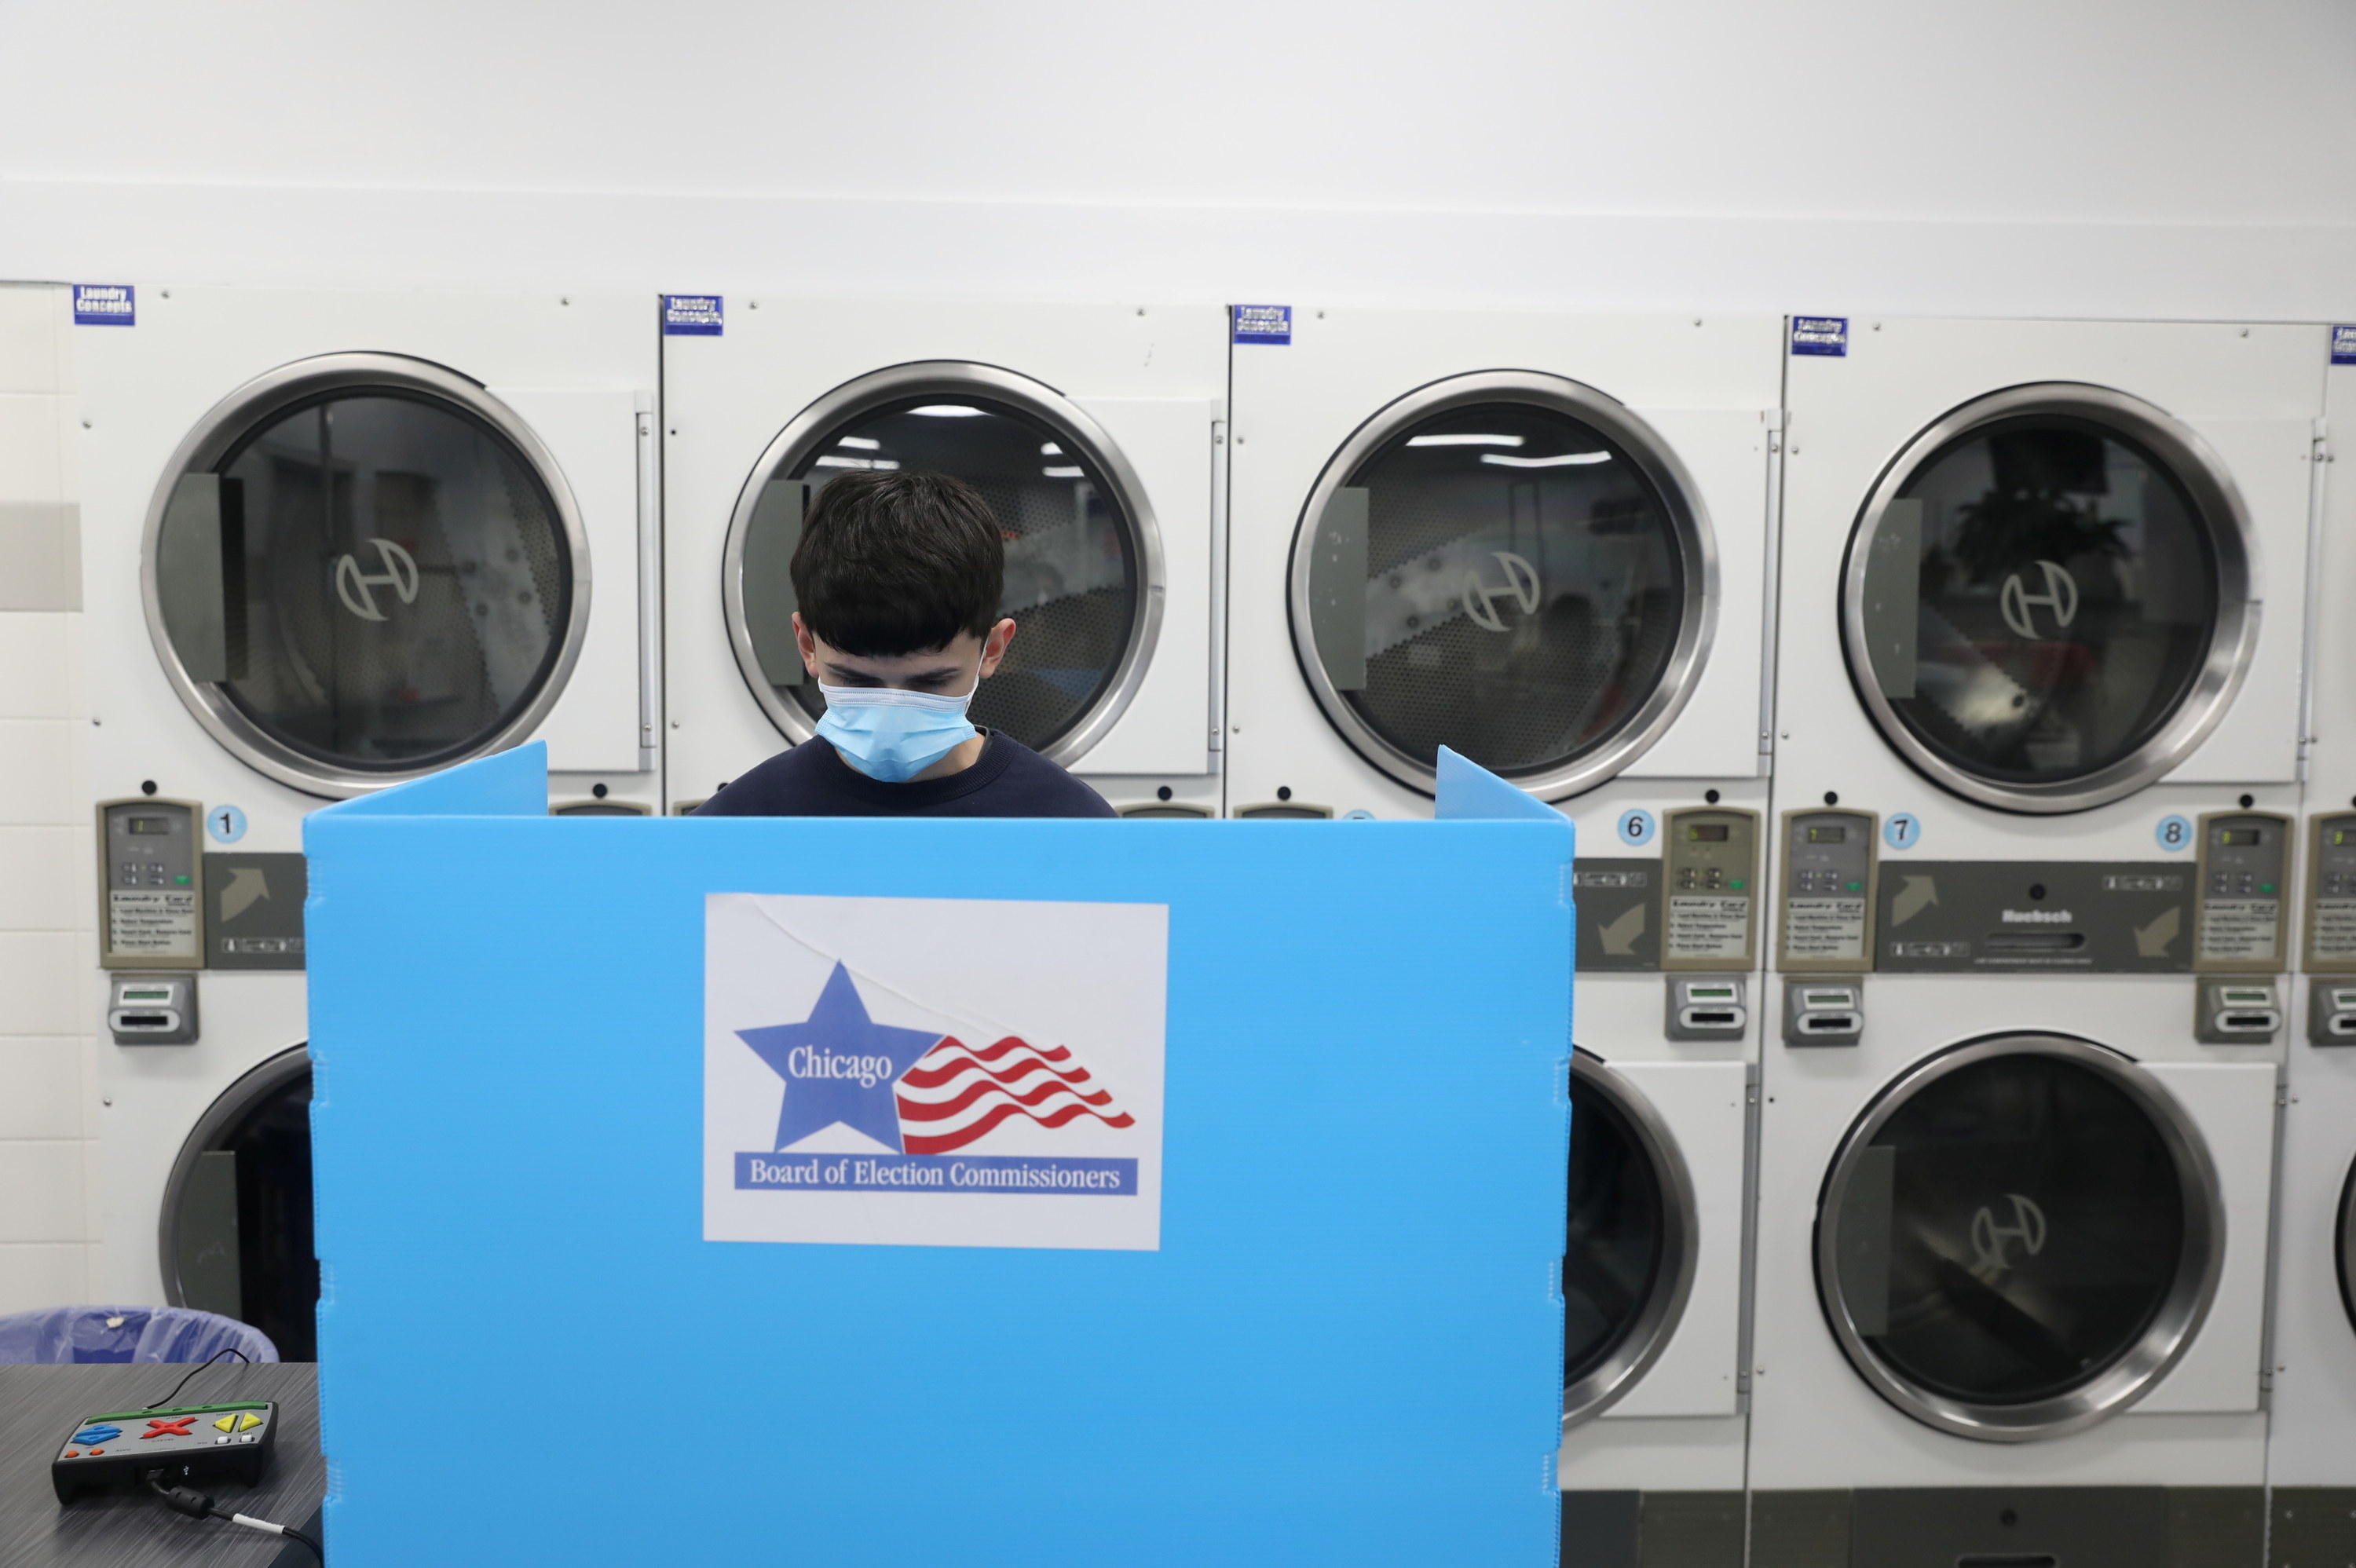 A man wearing a face mask stands behind a ballot booth at a polling place inside a laundromat